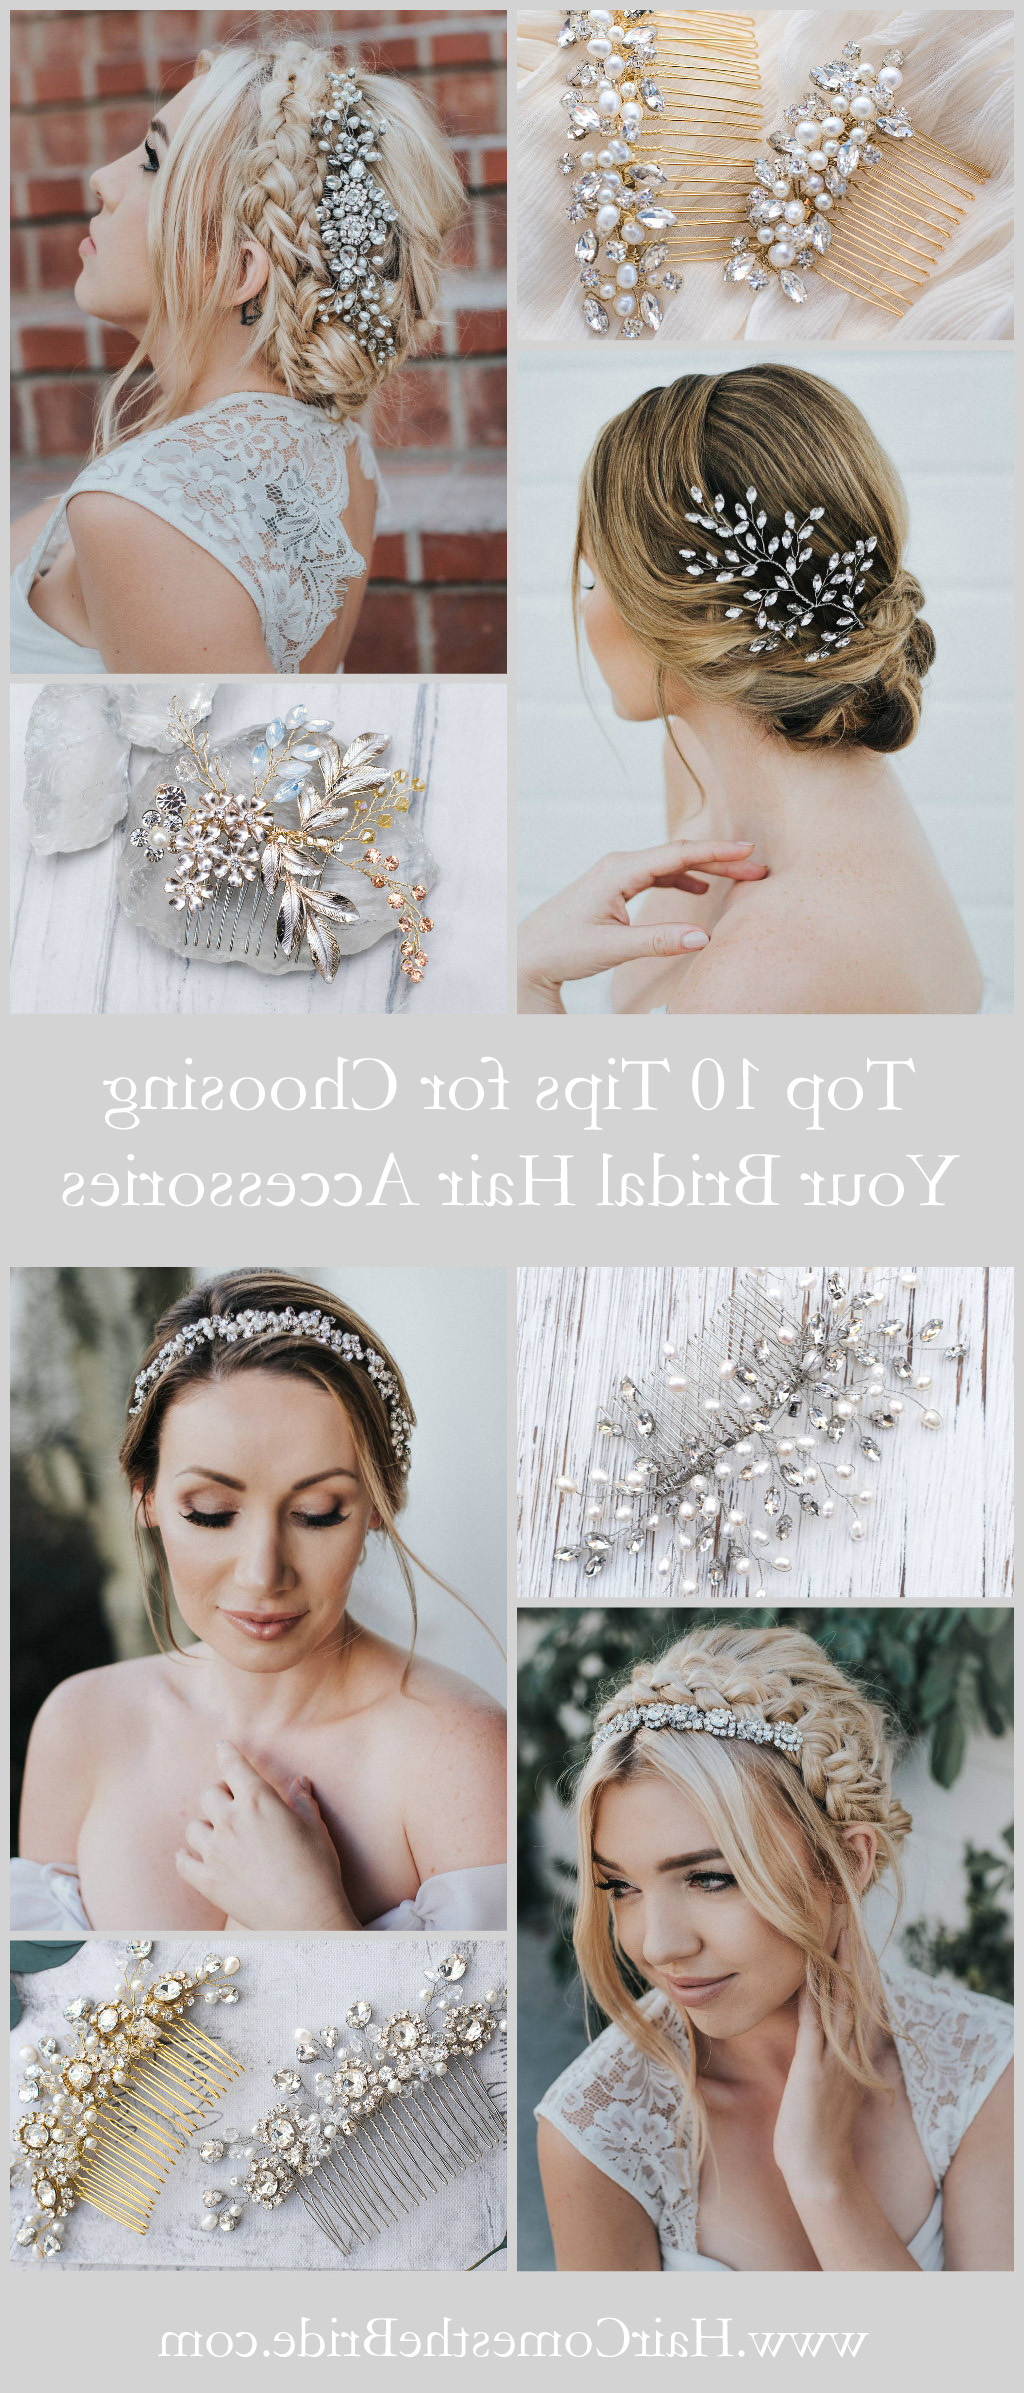 Fashionable Bridal Chignon Hairstyles With Headband And Veil With Top 10 Tips For Choosing Your Bridal Hair Accessories – Hair Comes (Gallery 9 of 20)